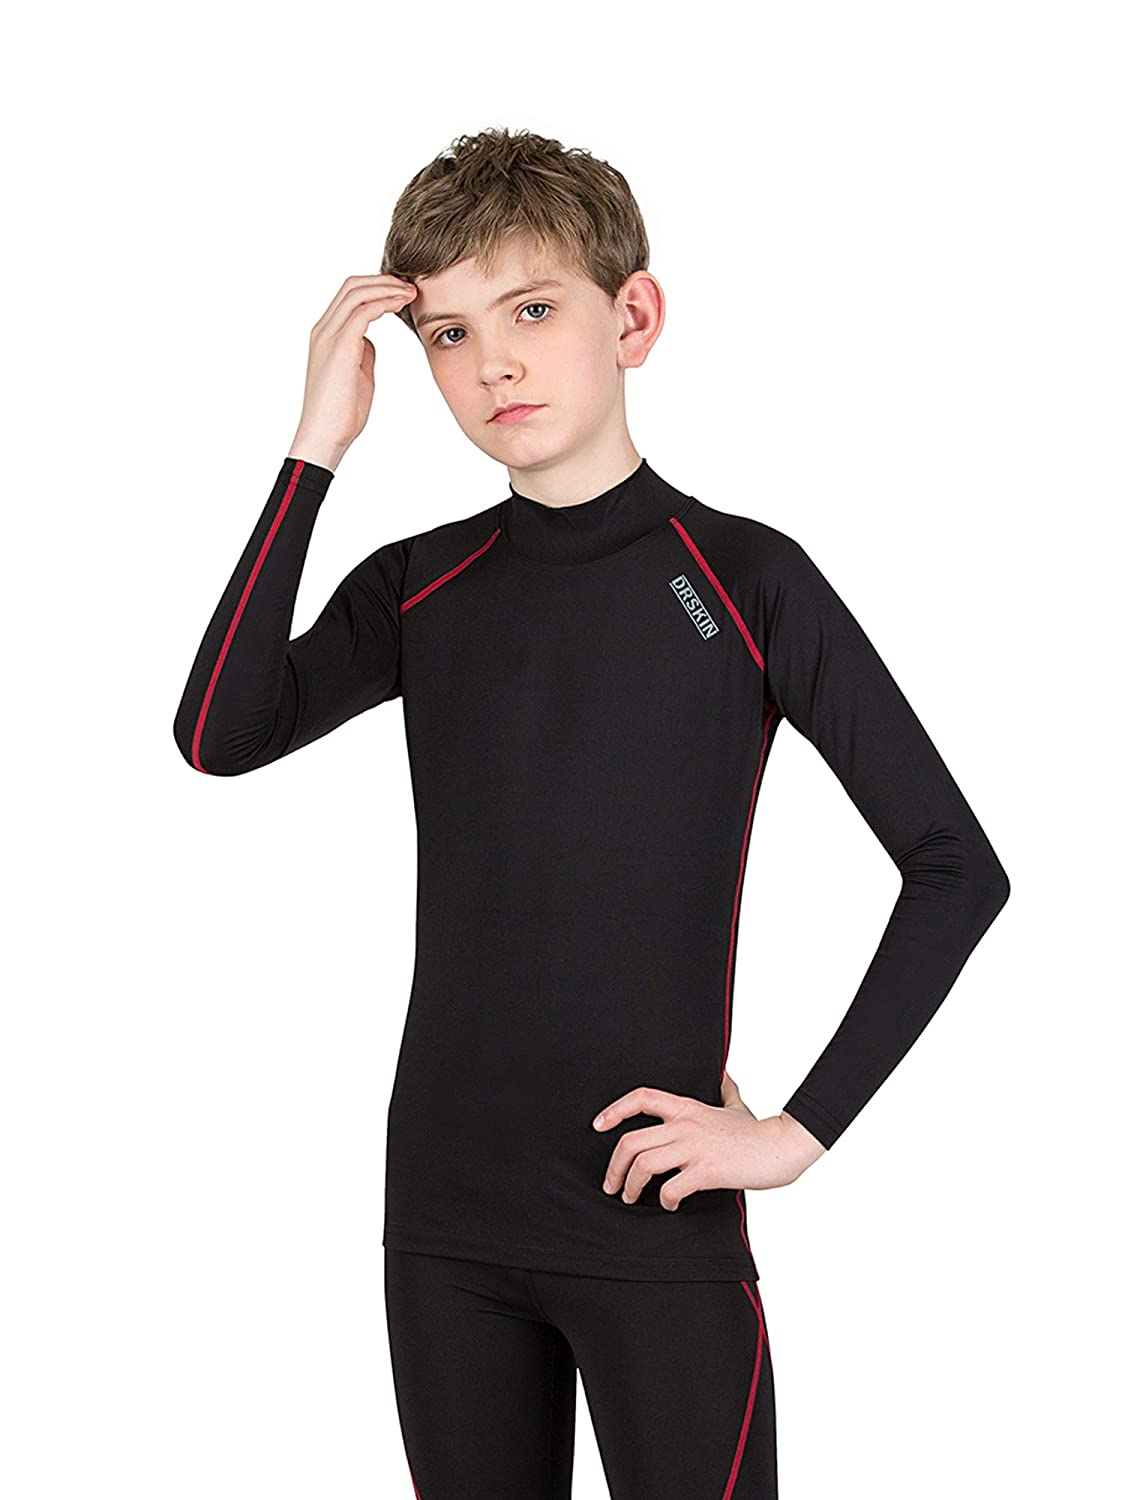 Long Sleeve Athletic Base Layer Compression Underwear Shirt or Tights Boys /& Girls DRSKIN Kids Unisex-